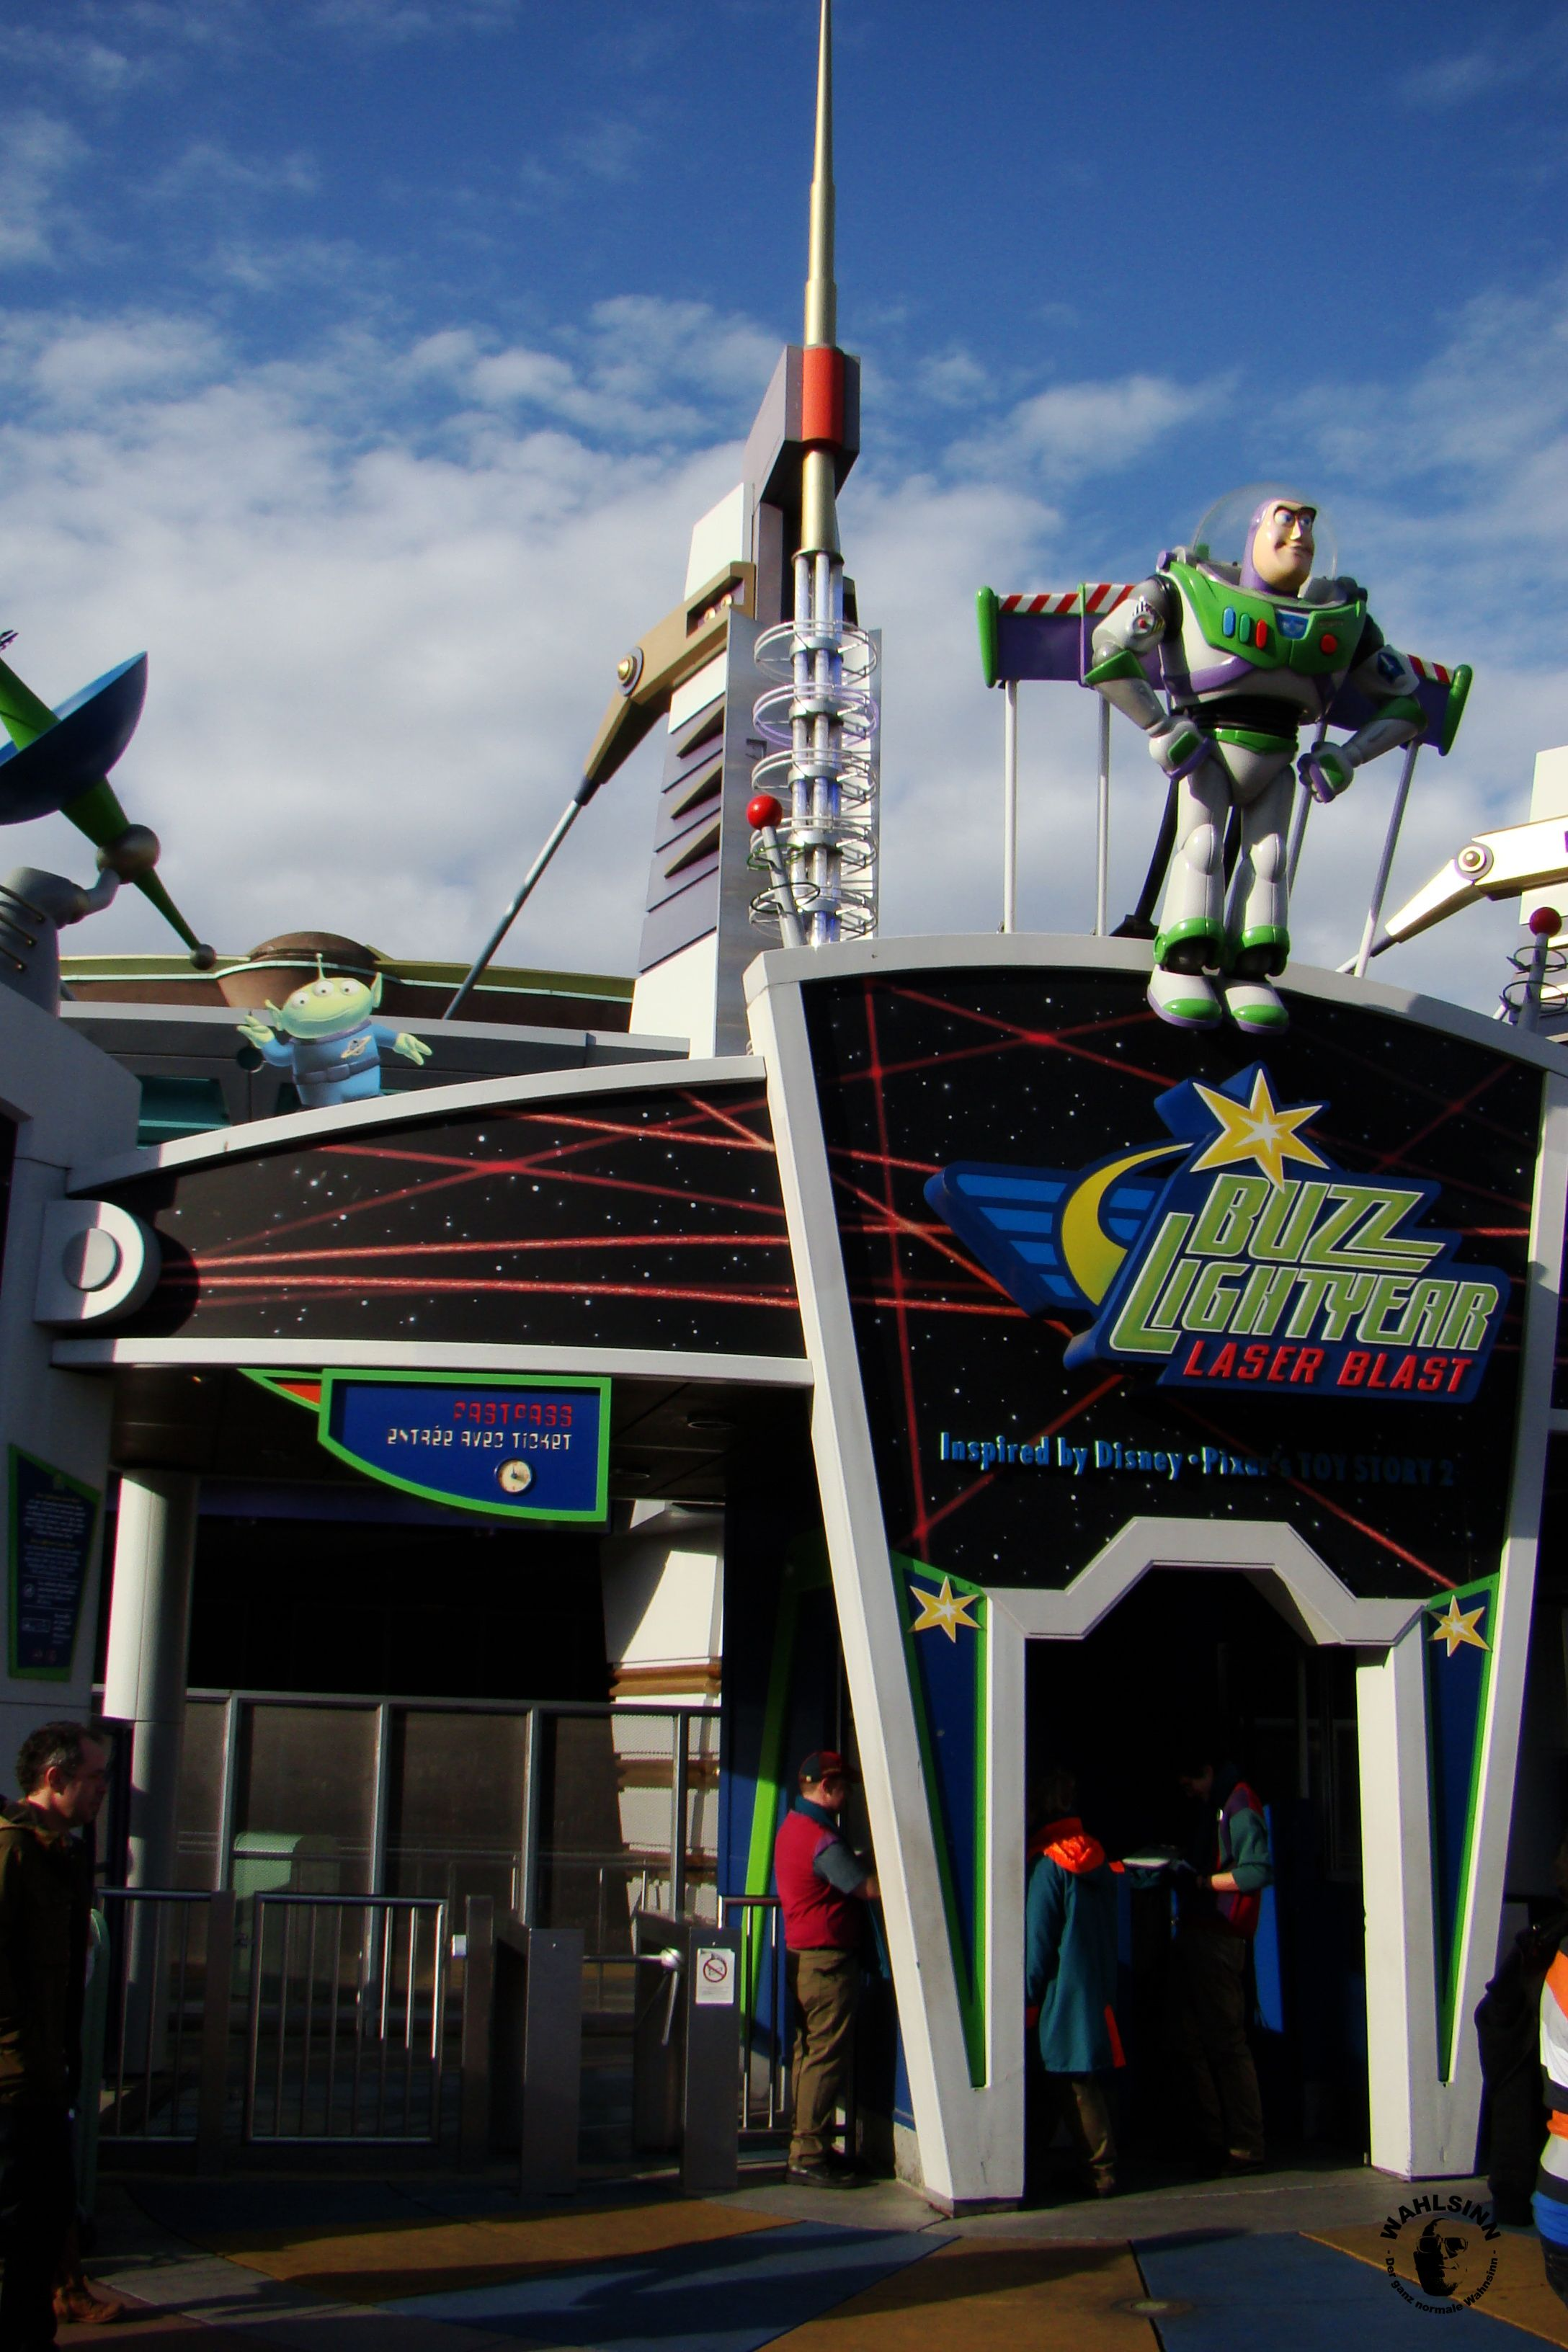 Disneyland Paris - Buzz Lightyear